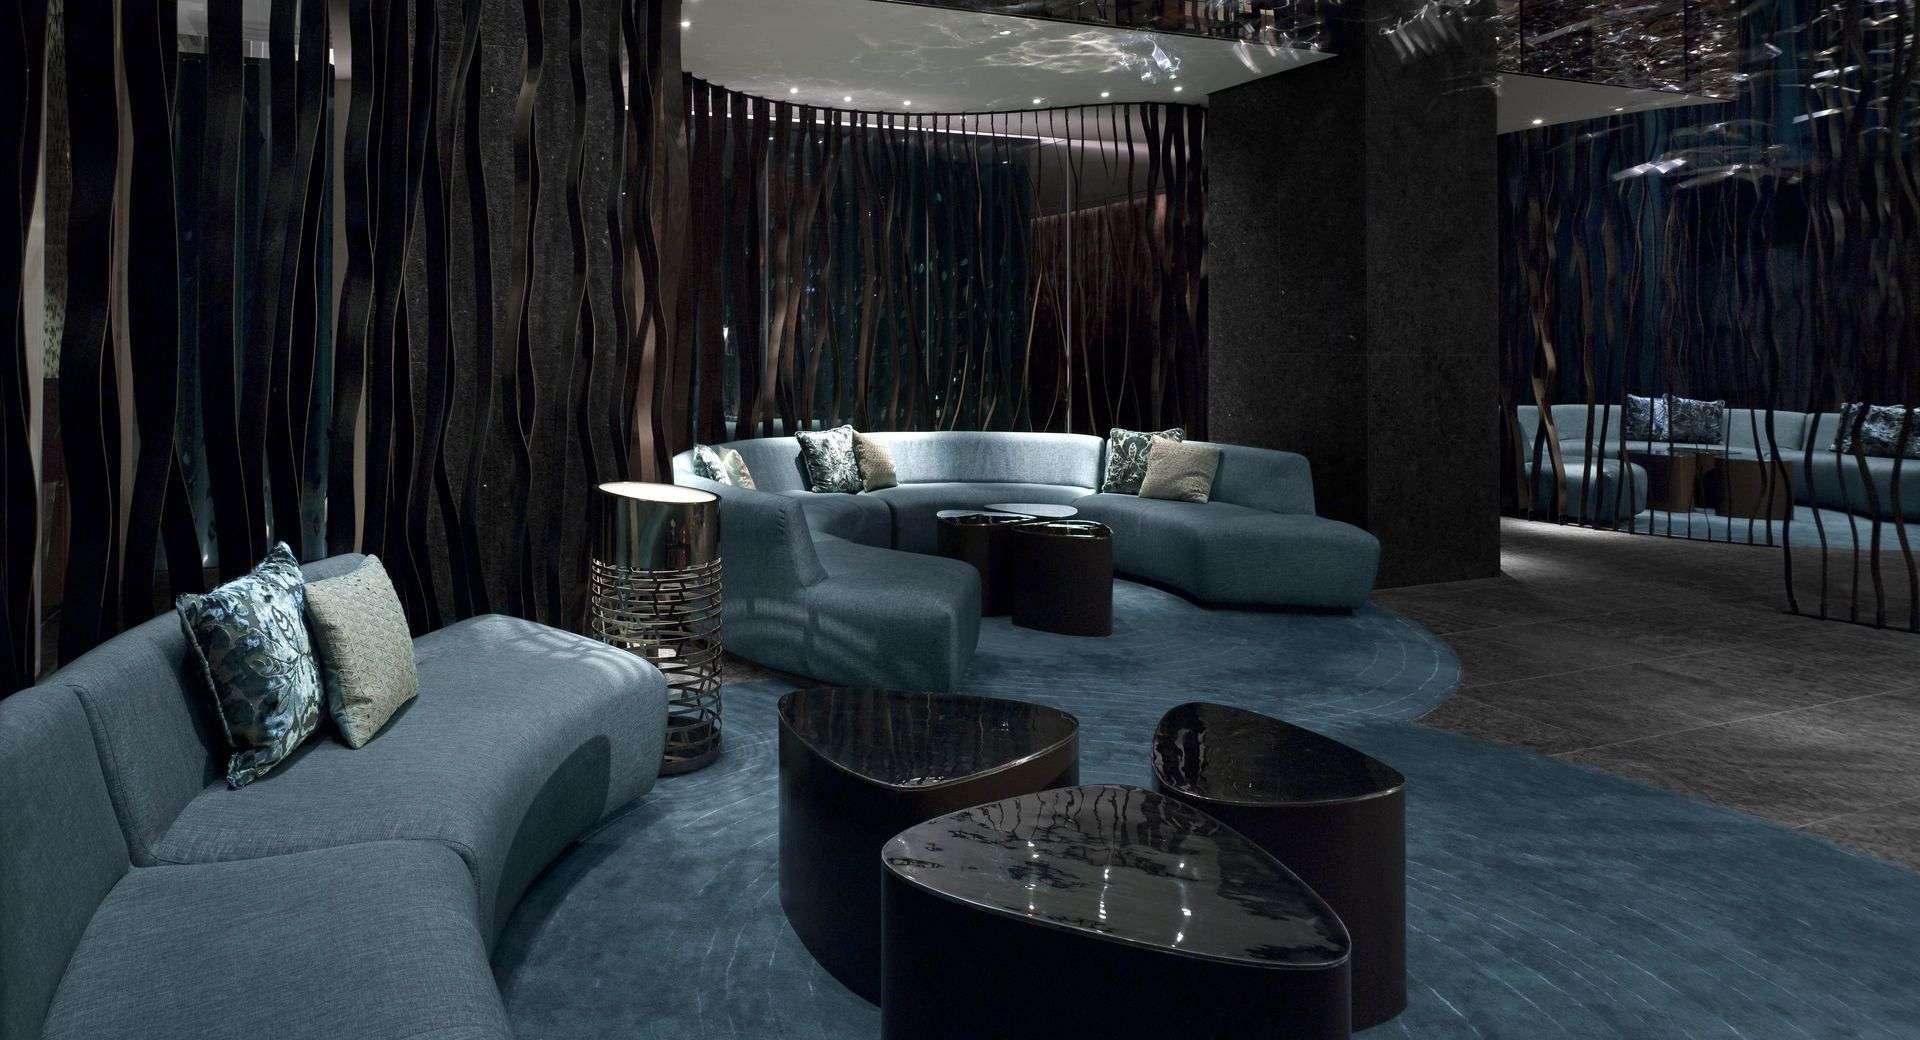 Contemporary Living Meets An Urban Oasis // Canadian Interior Design Firm  Burdifilek Sets New Standards In Luxury Hospitality With Innovative  Designs, ...